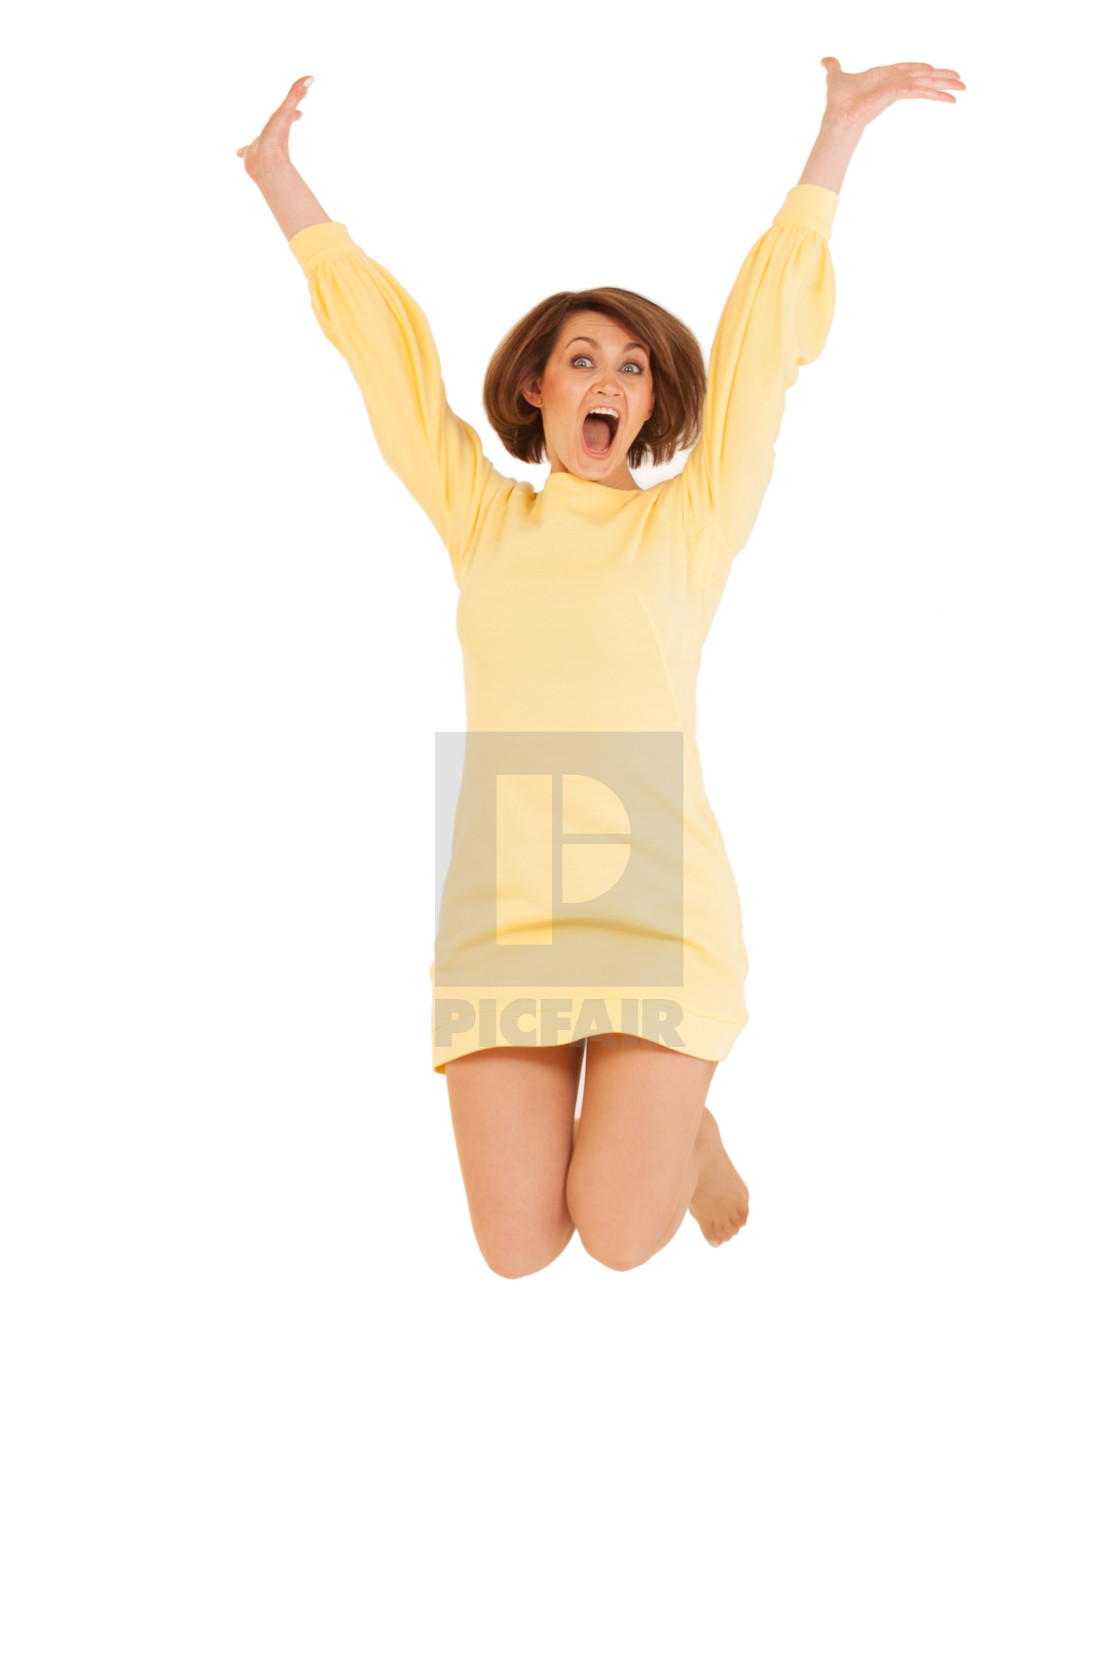 """Adult woman in yellow dress jumping"" stock image"